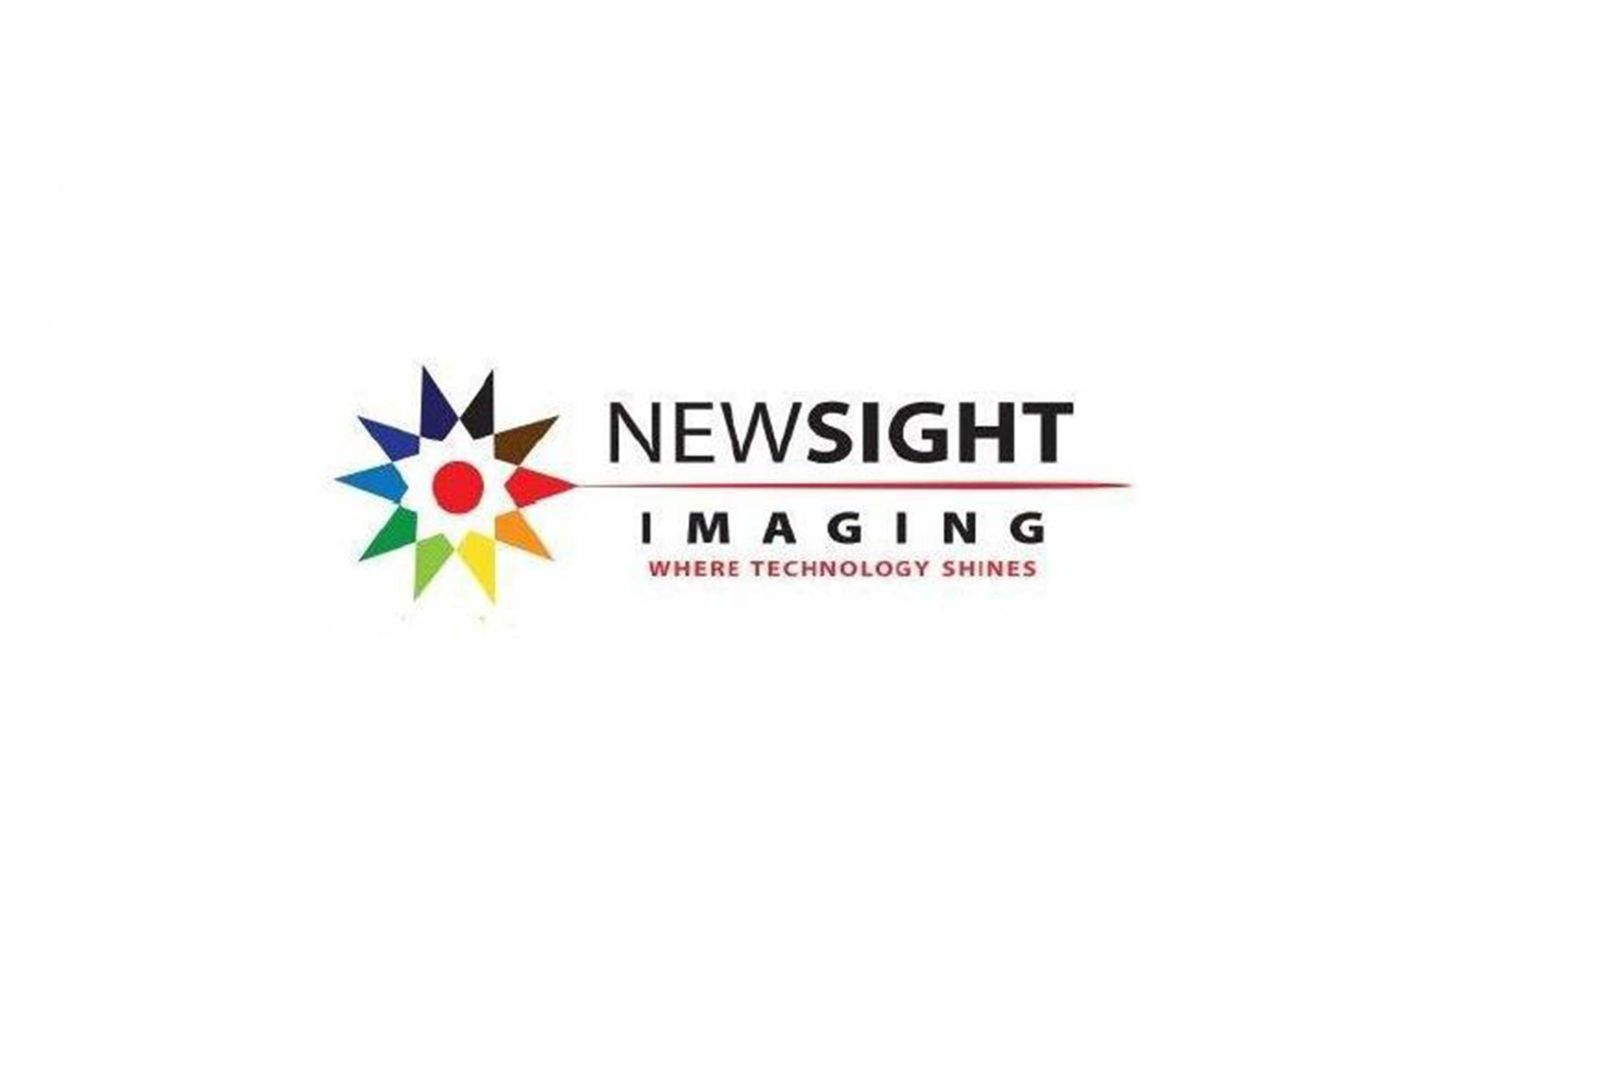 Newsight Imaging CMOS Sensors Offer High Performance in Demanding Applications